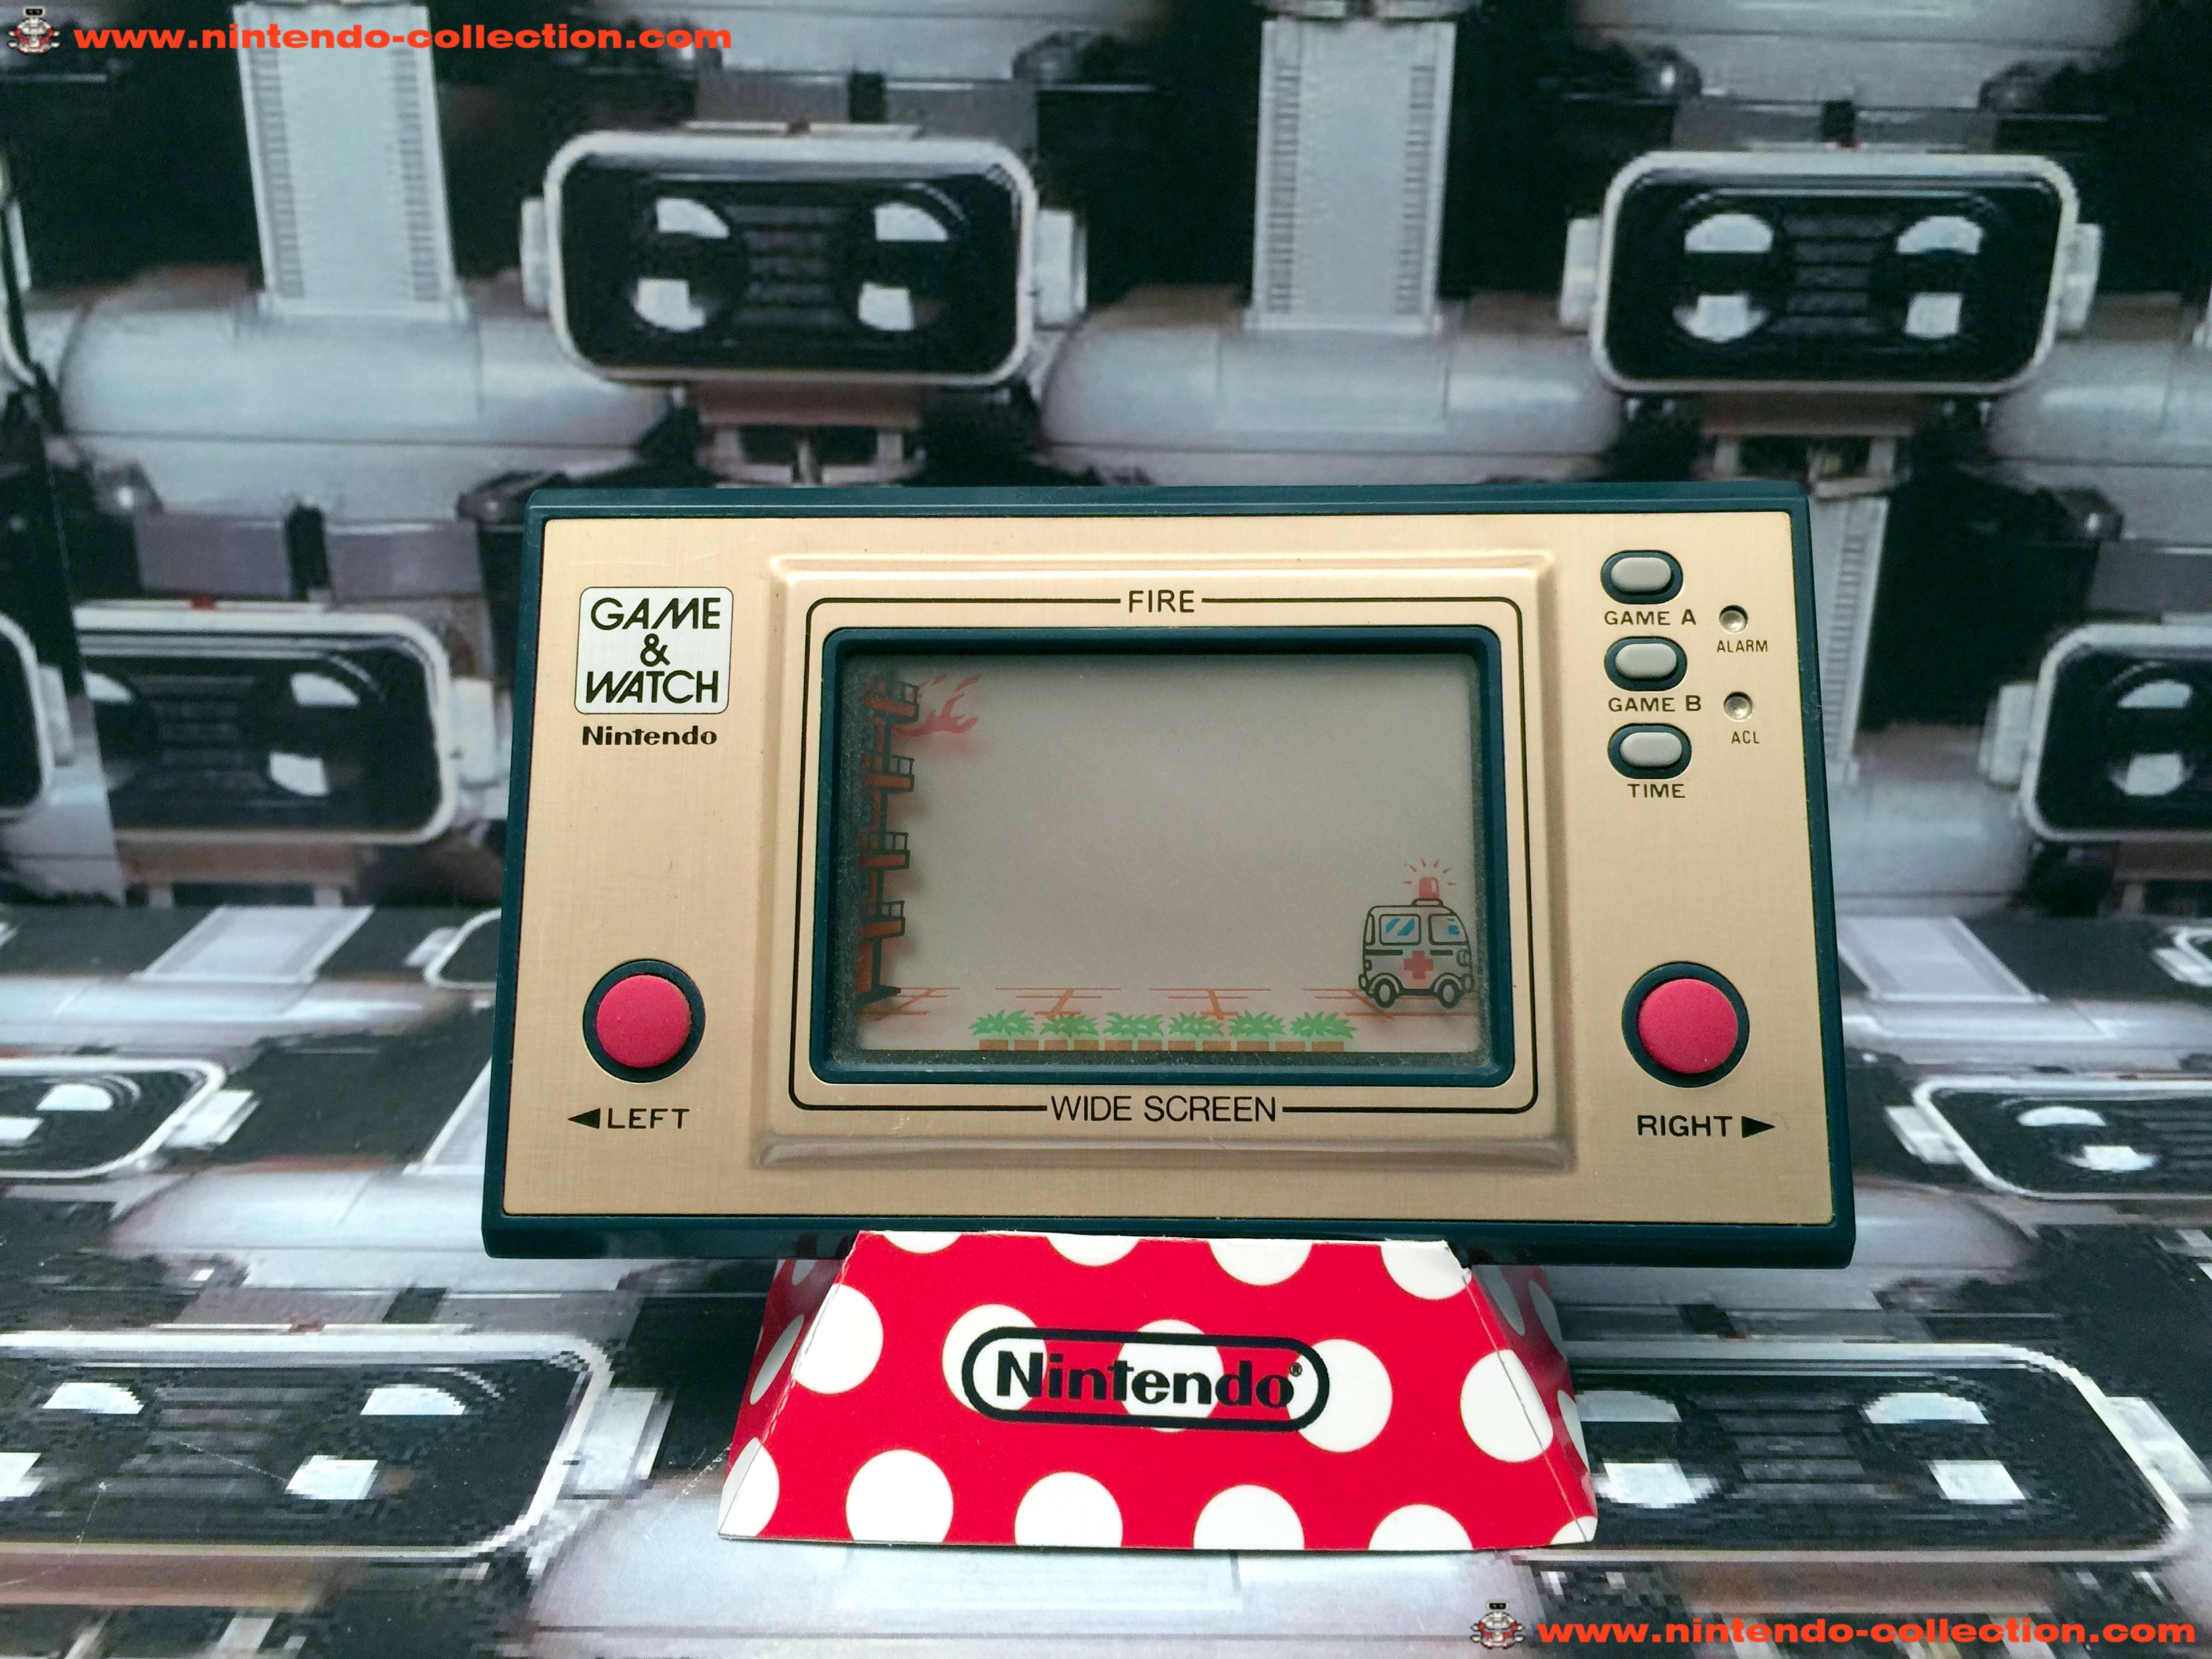 www.nintendo-collection.com - Game & Watch Wide Screen Fire